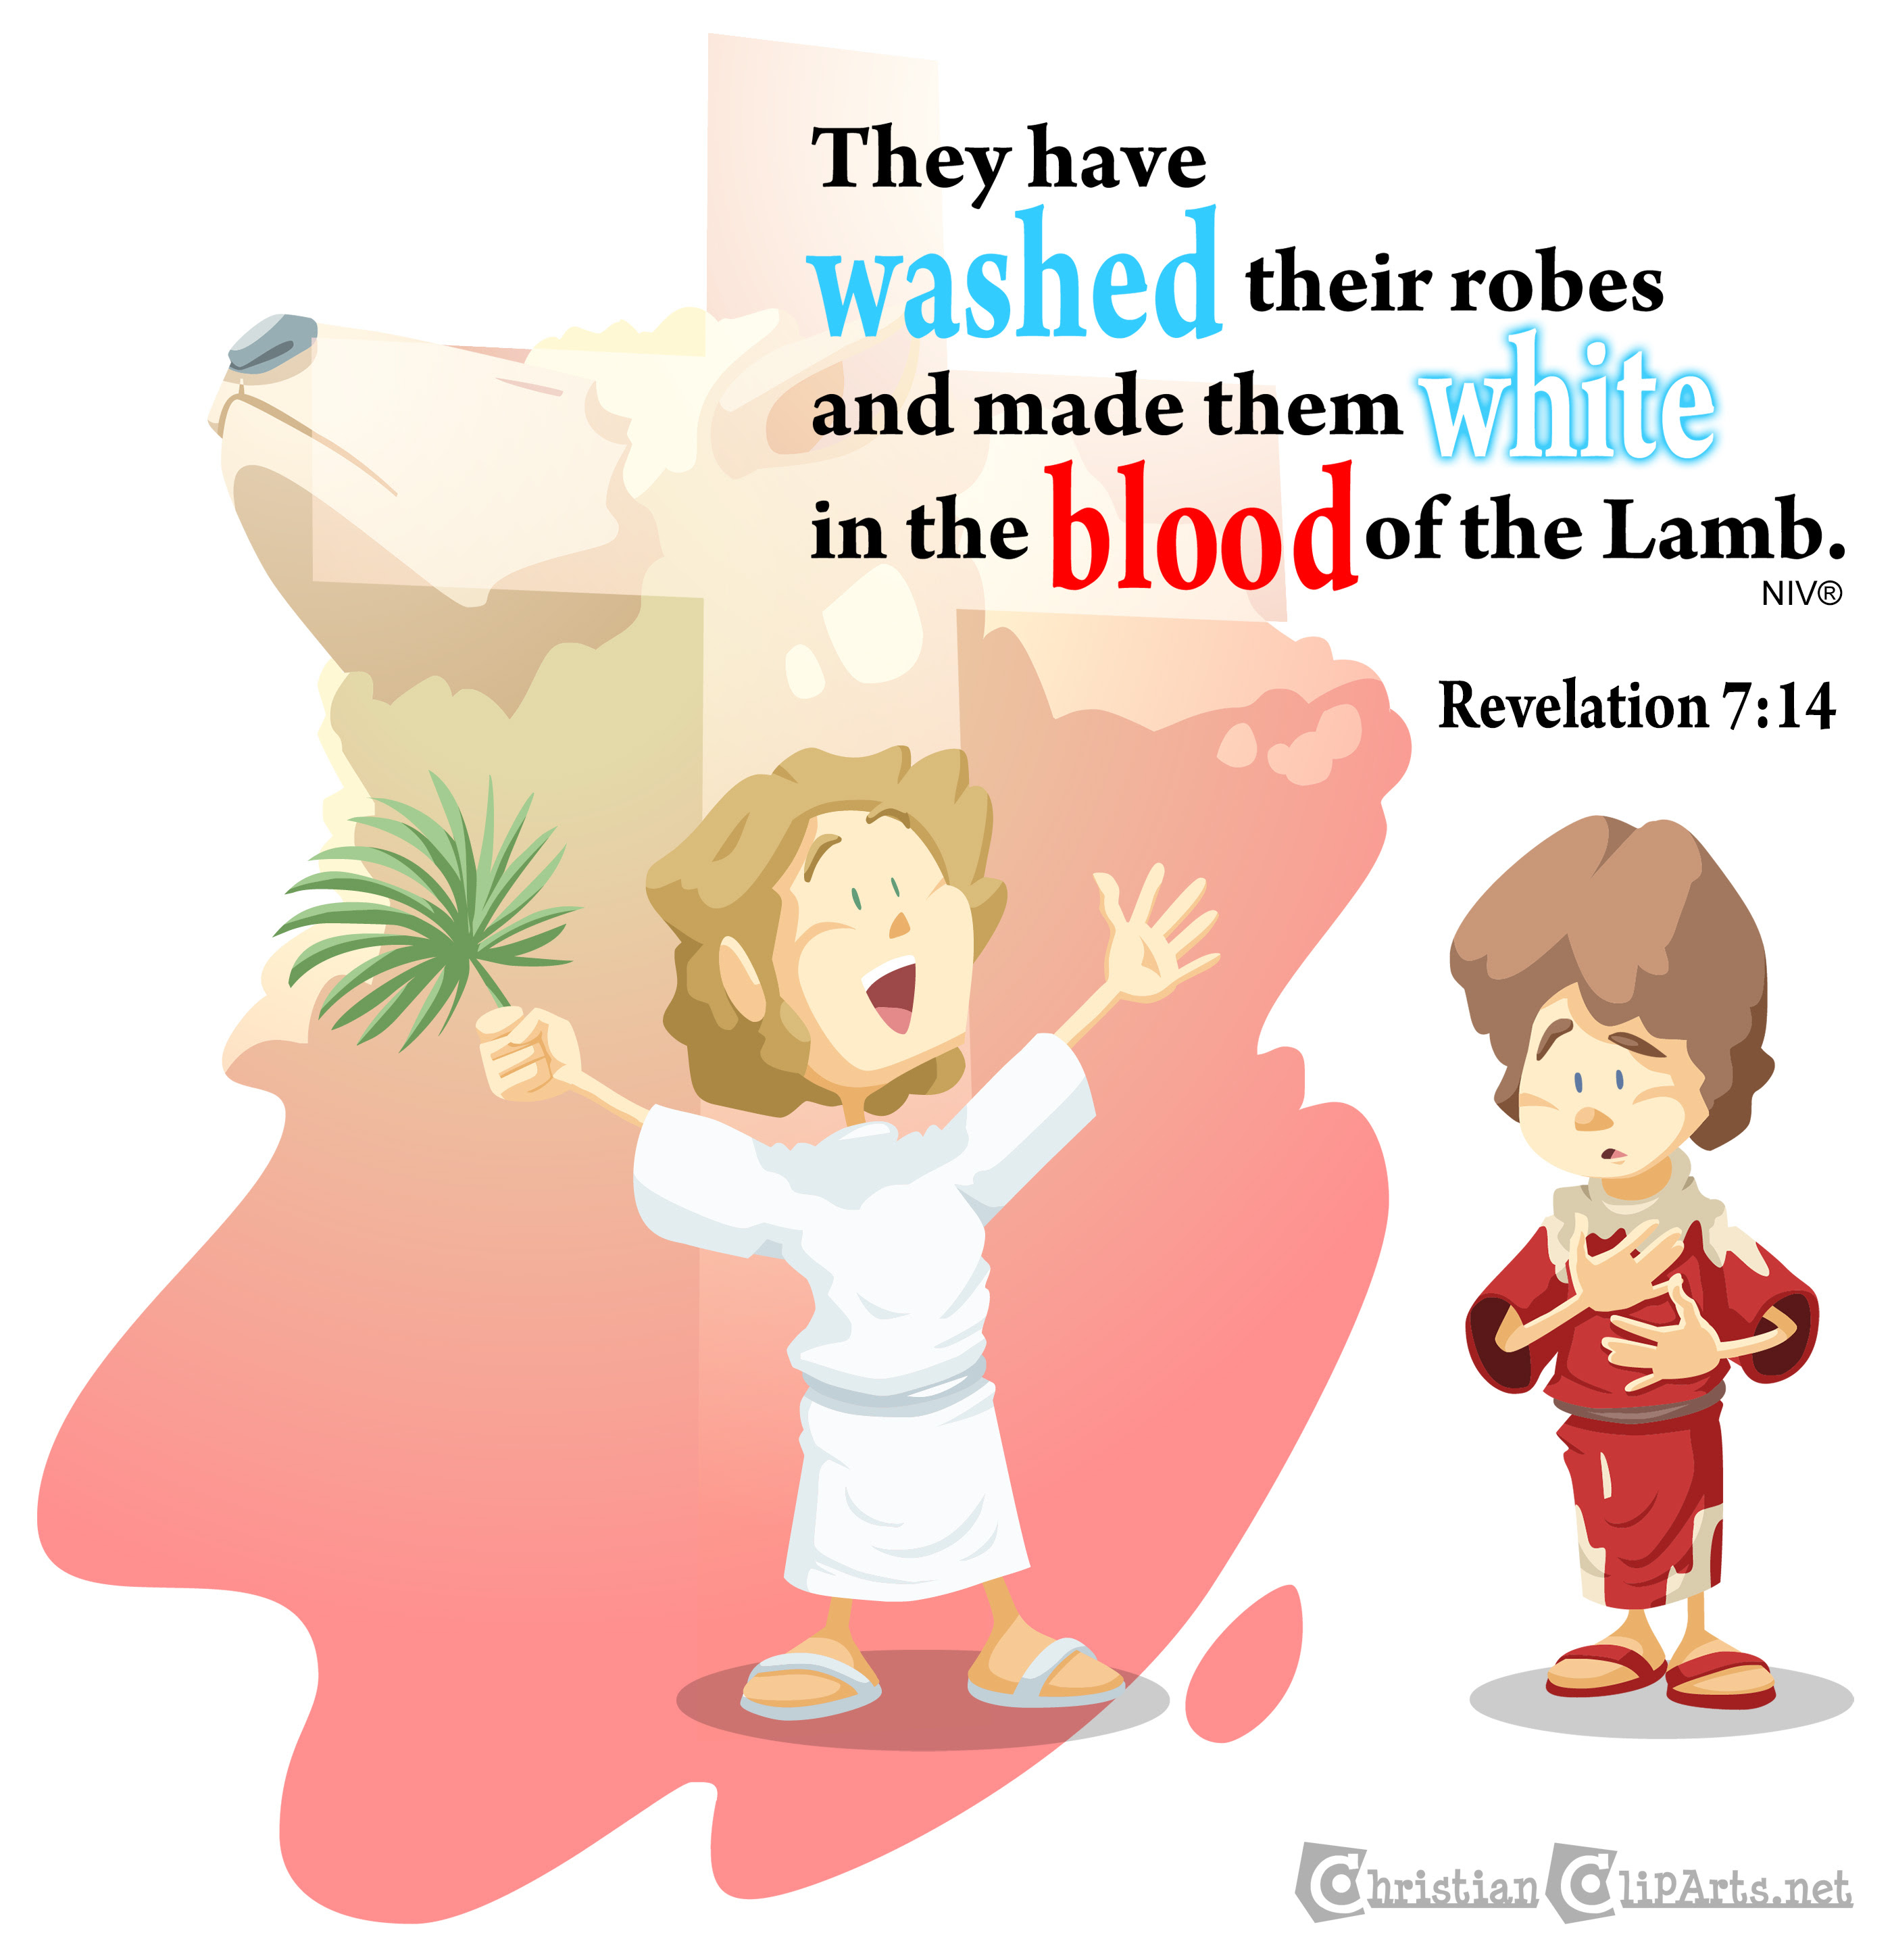 Washed in the blood of the Lamb